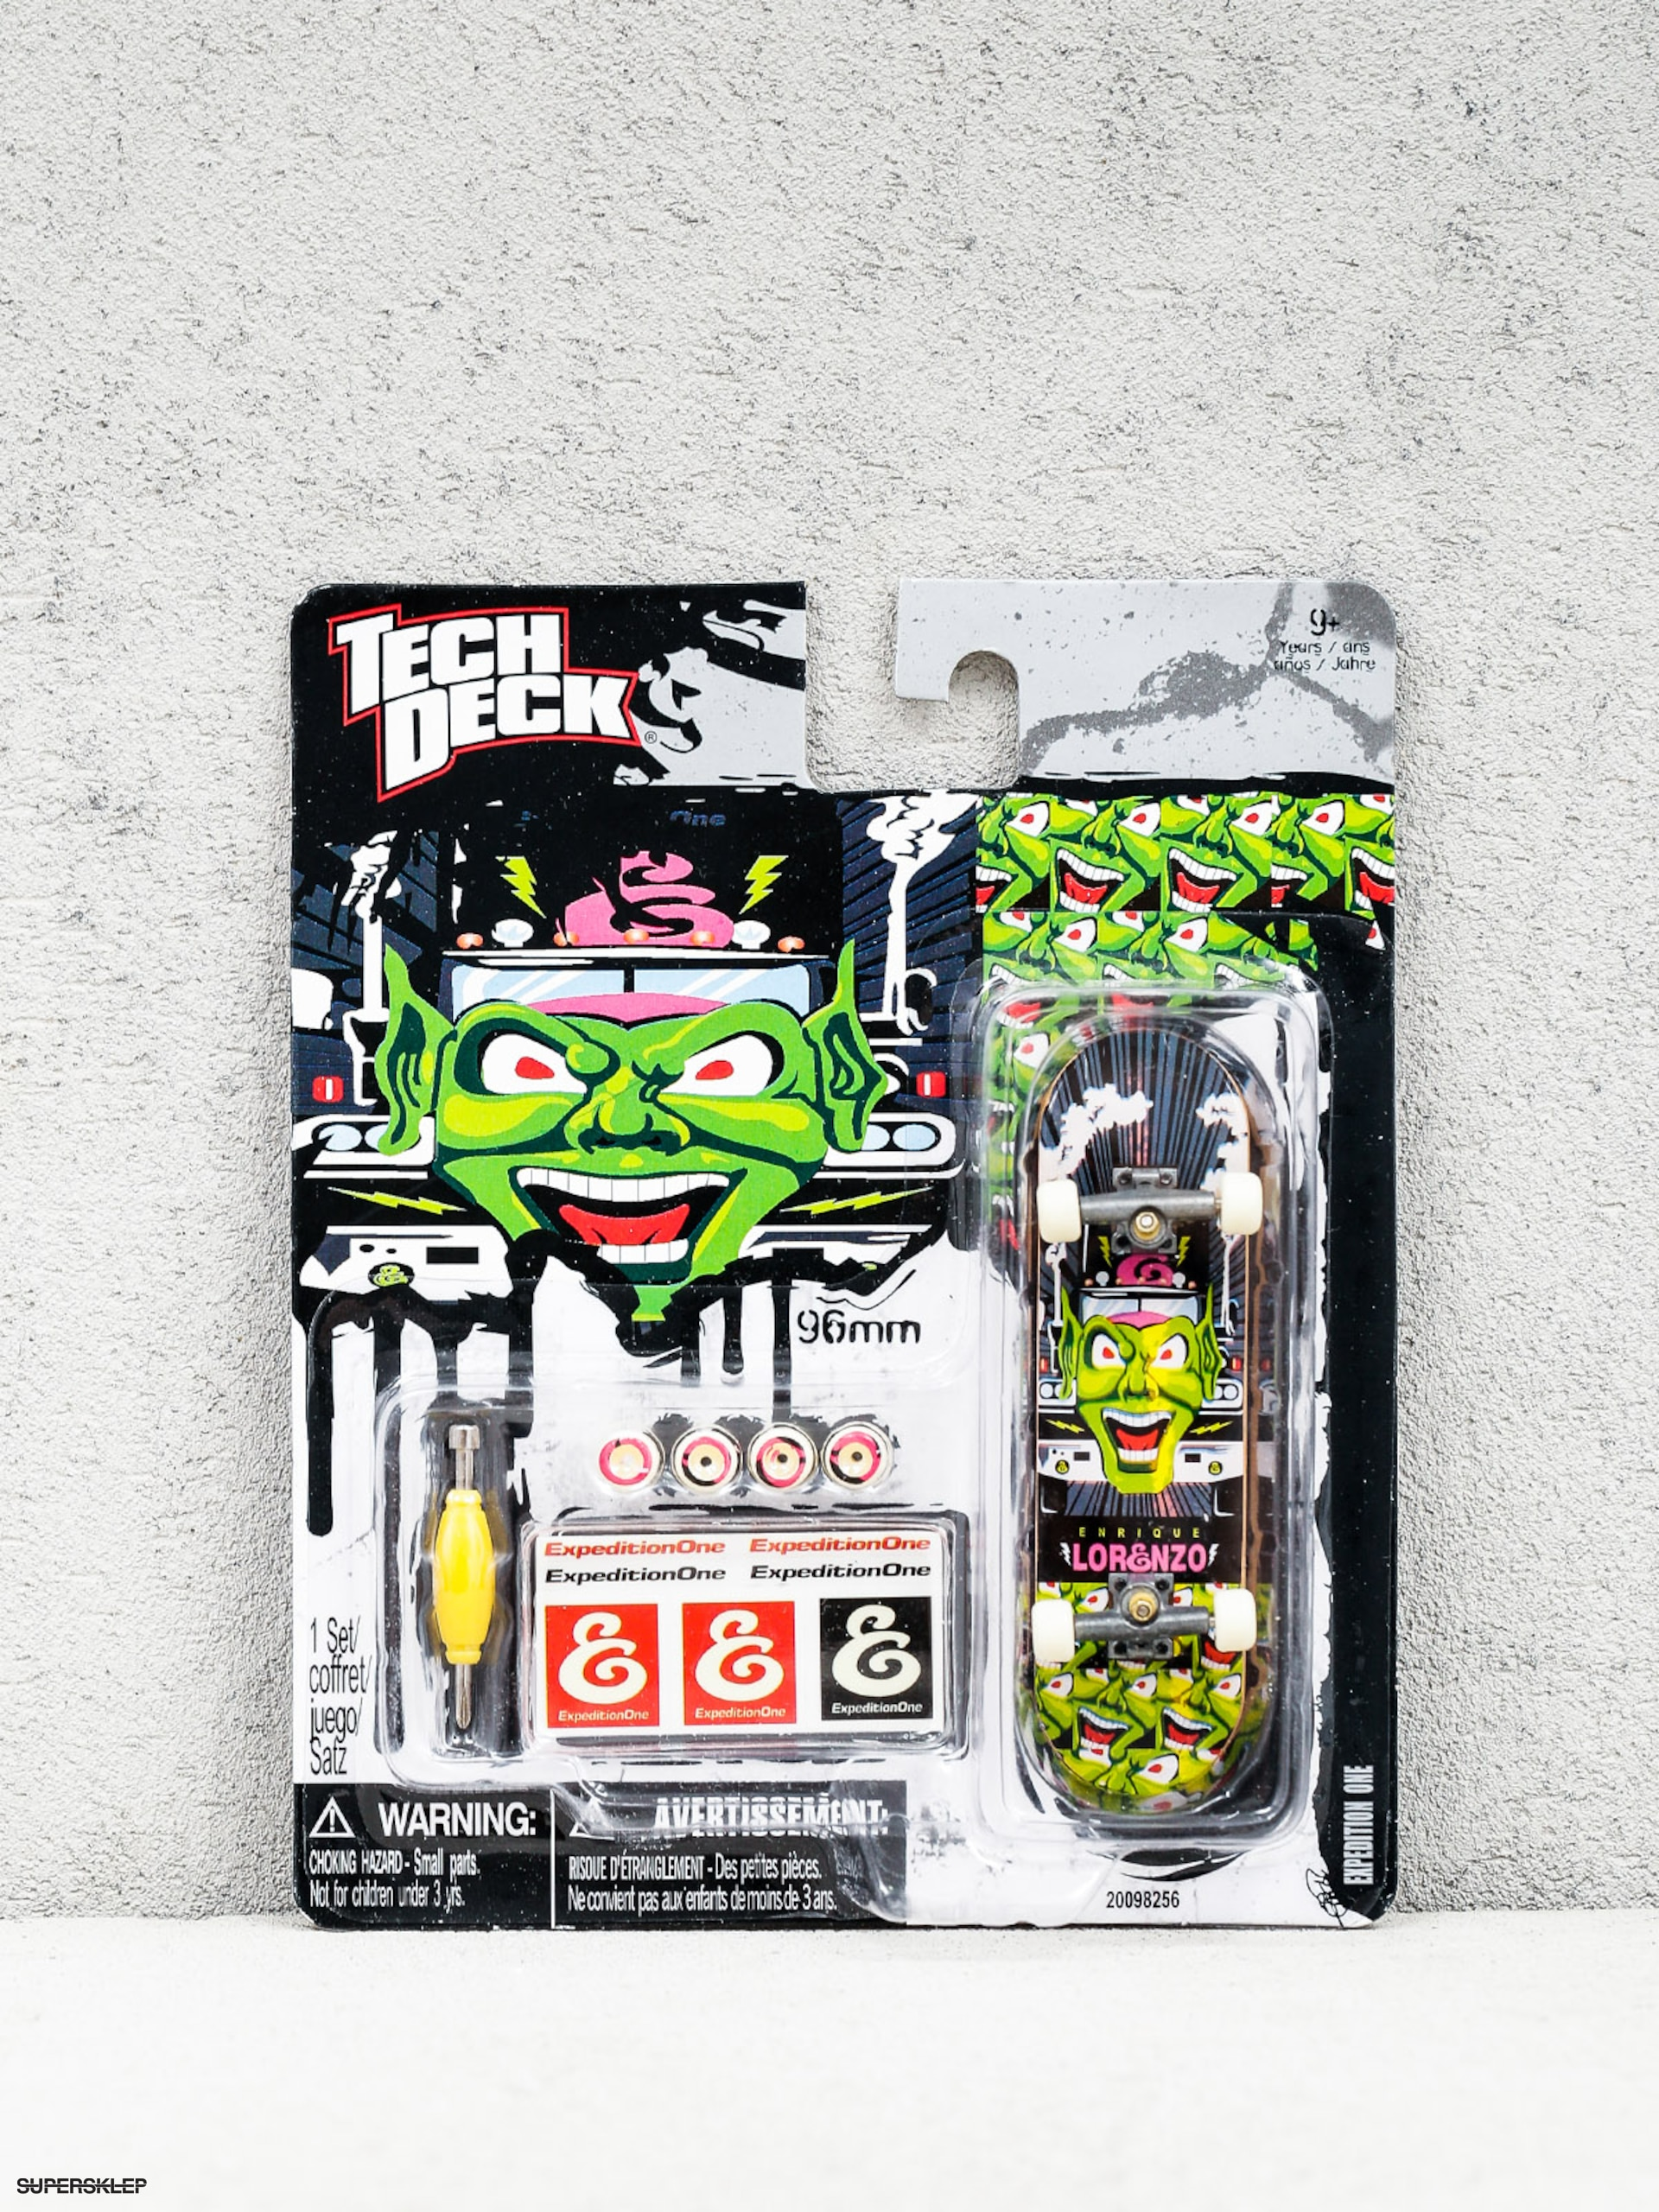 Tech Deck Fingerboard Expedition One 05